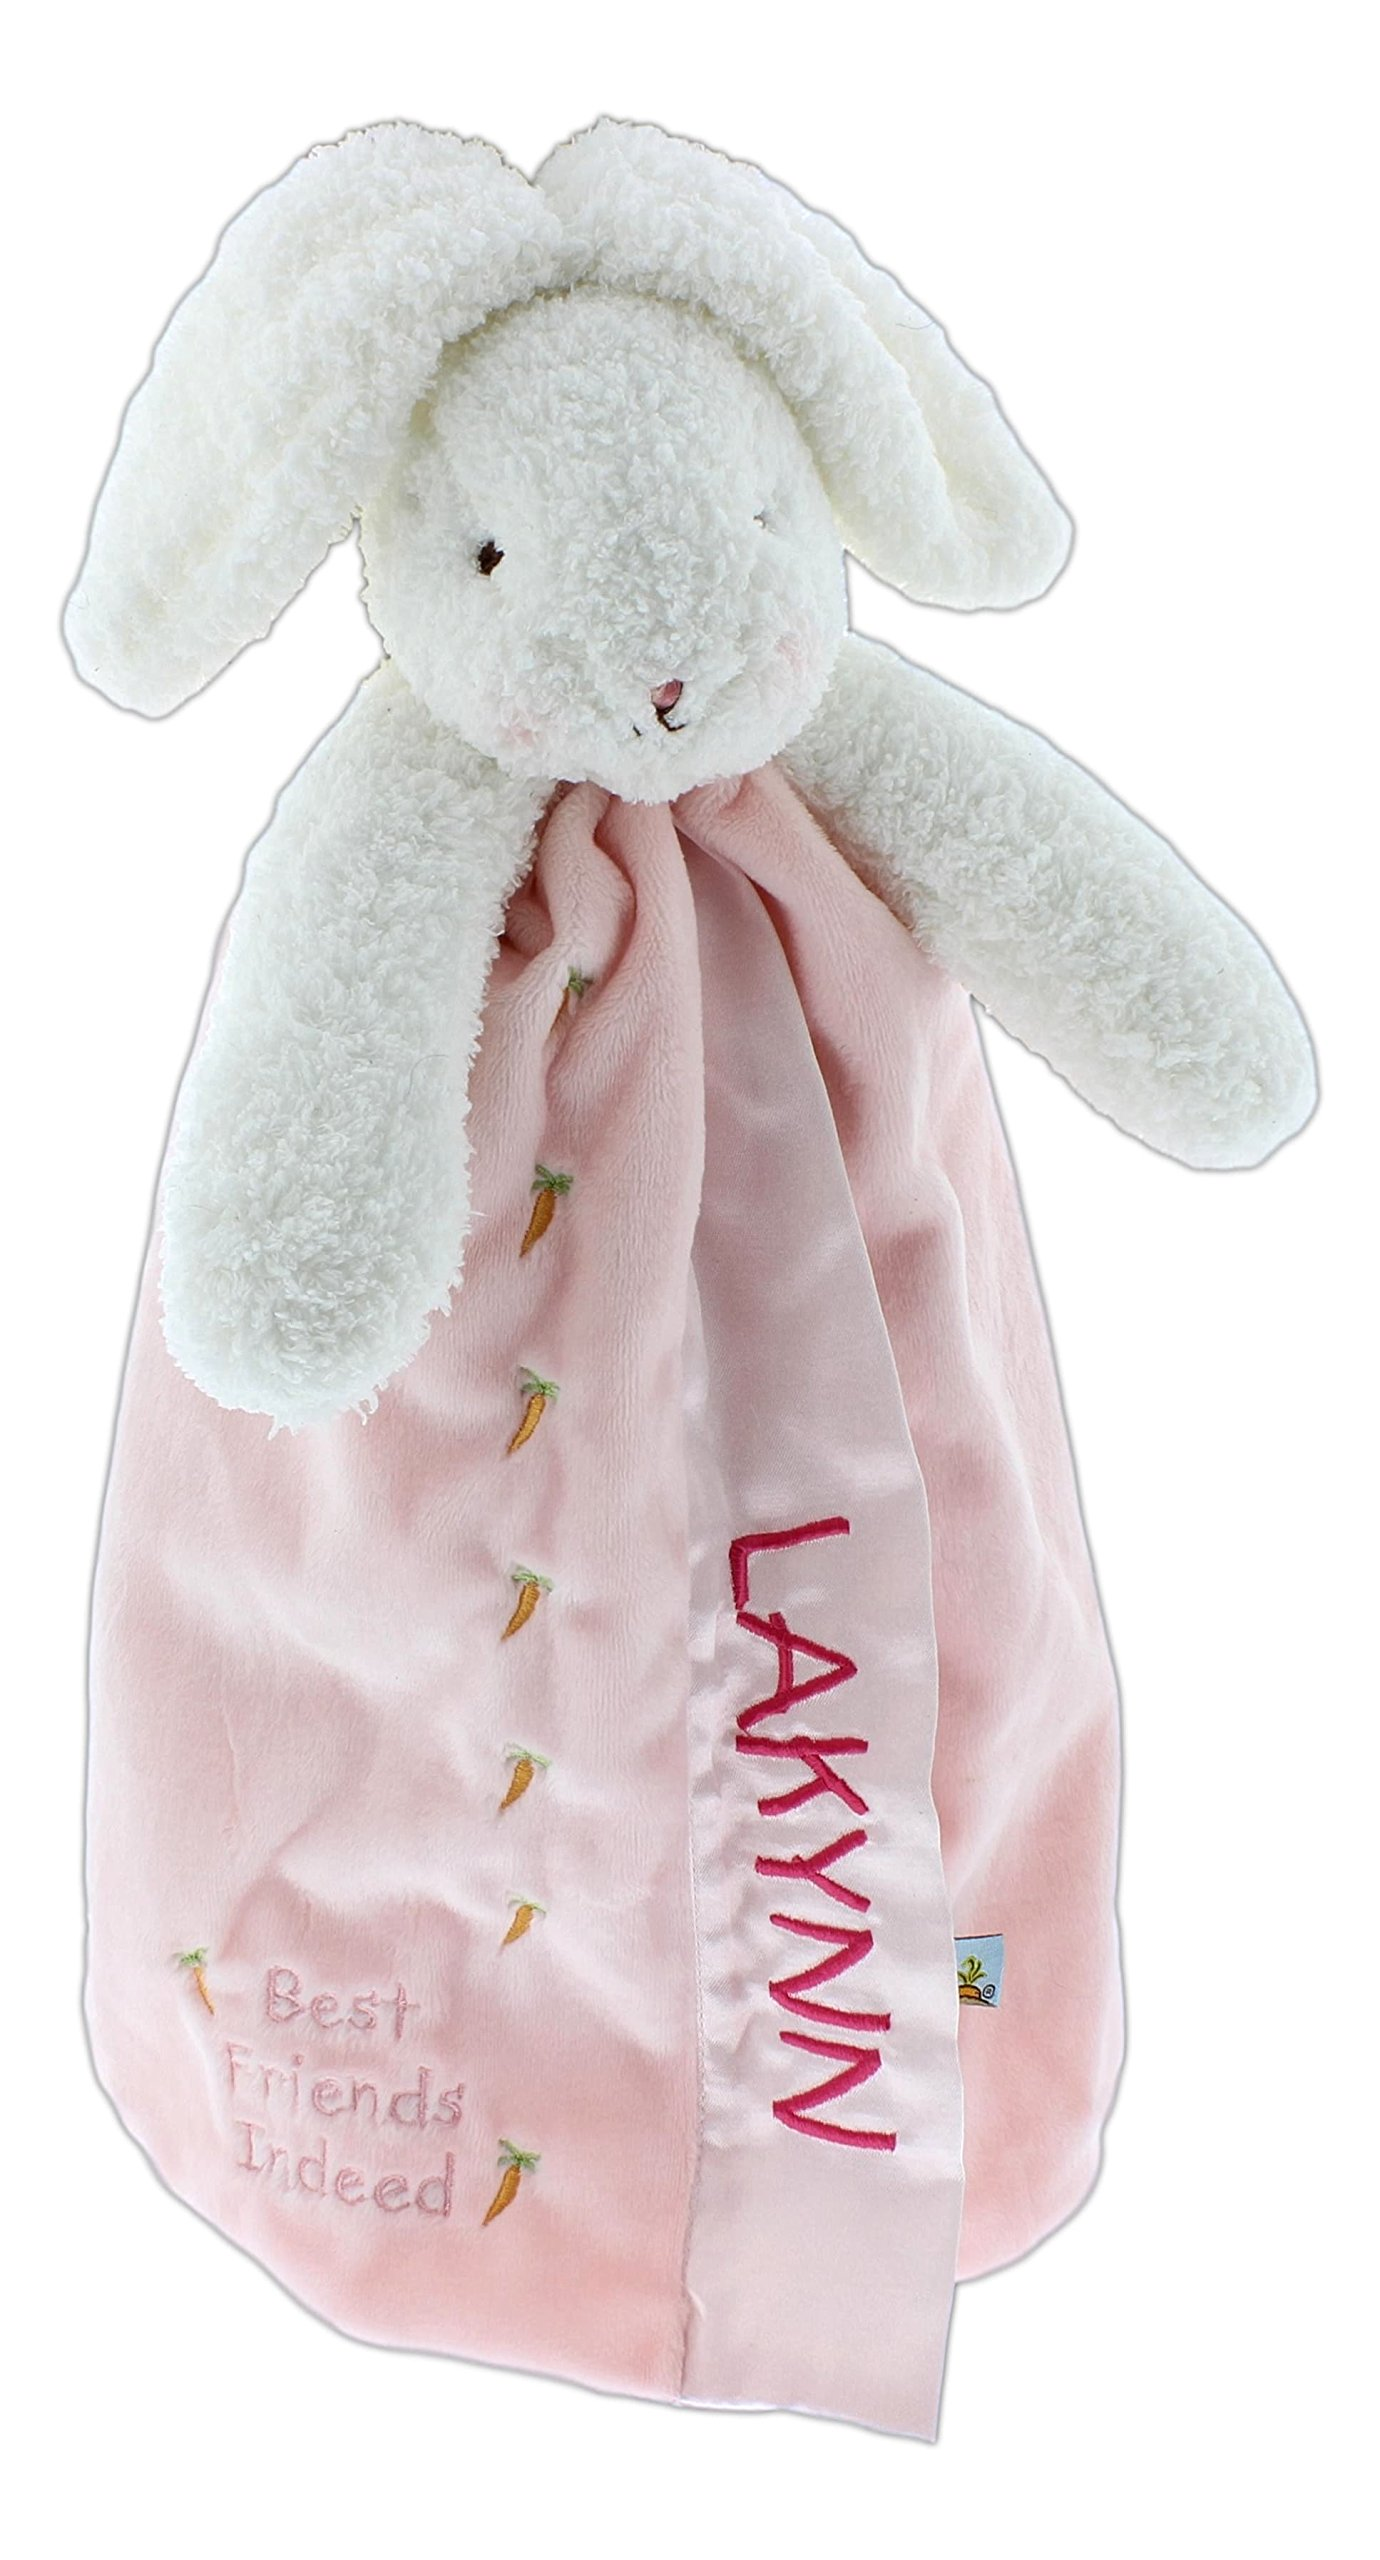 Personalized Embroidered Bunnies by the Bay Buddy Blankets (16'' Blossom Buddy Blanket)